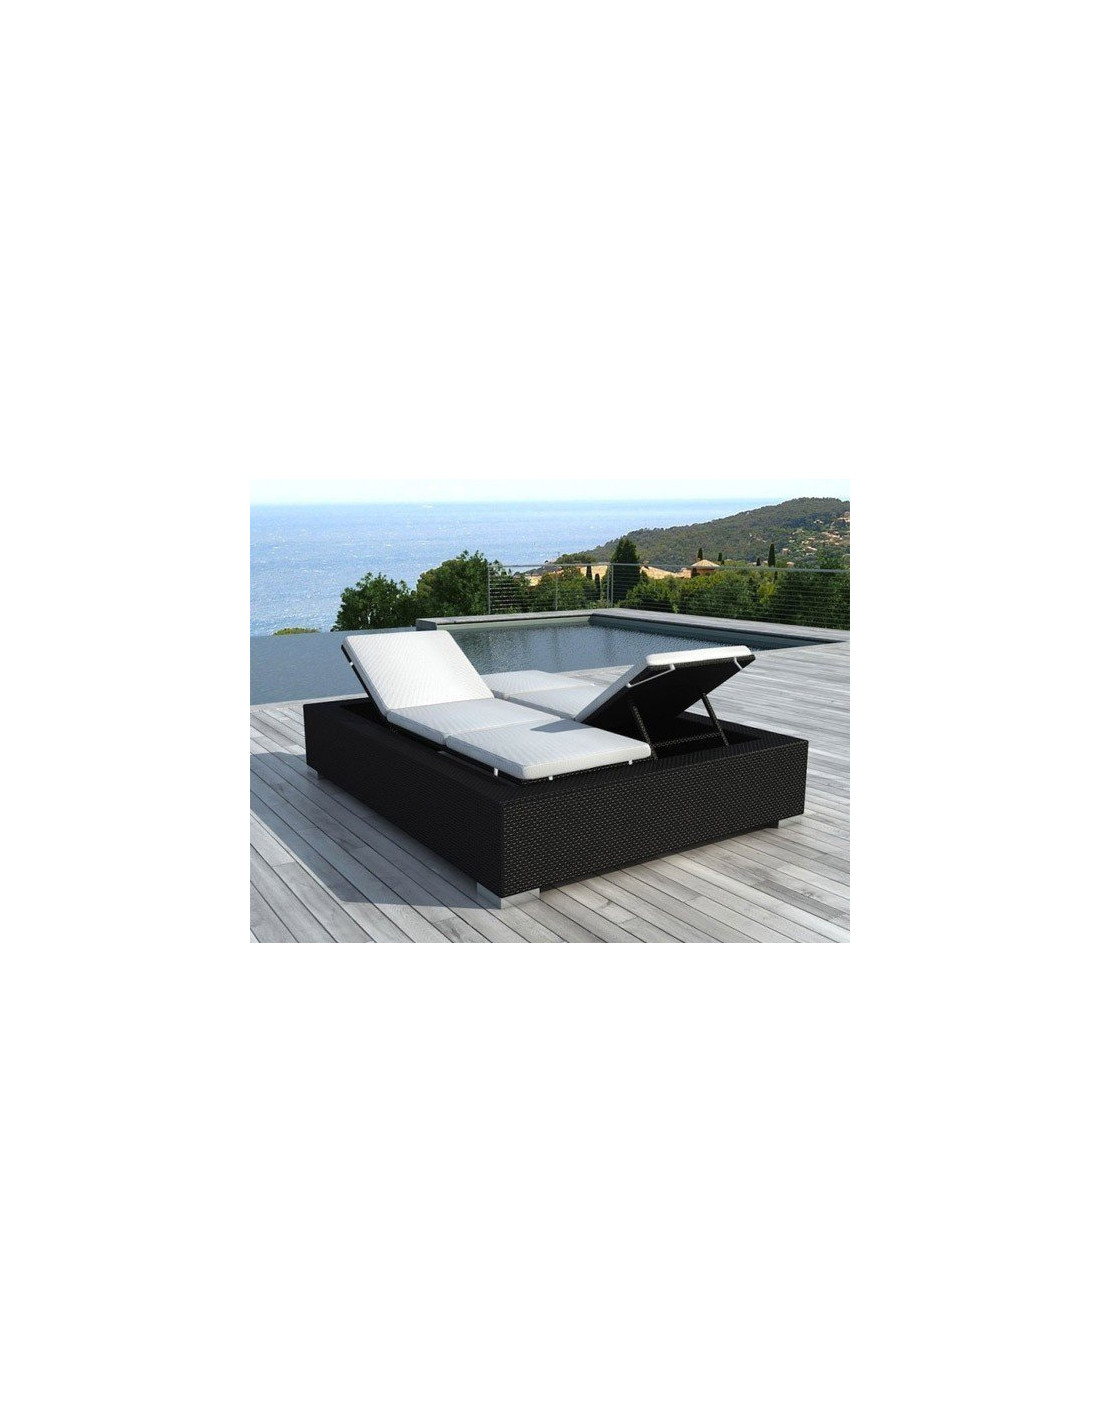 Bain de soleil double pas cher en r sine tress e 2 places for Chaise longue design exterieur